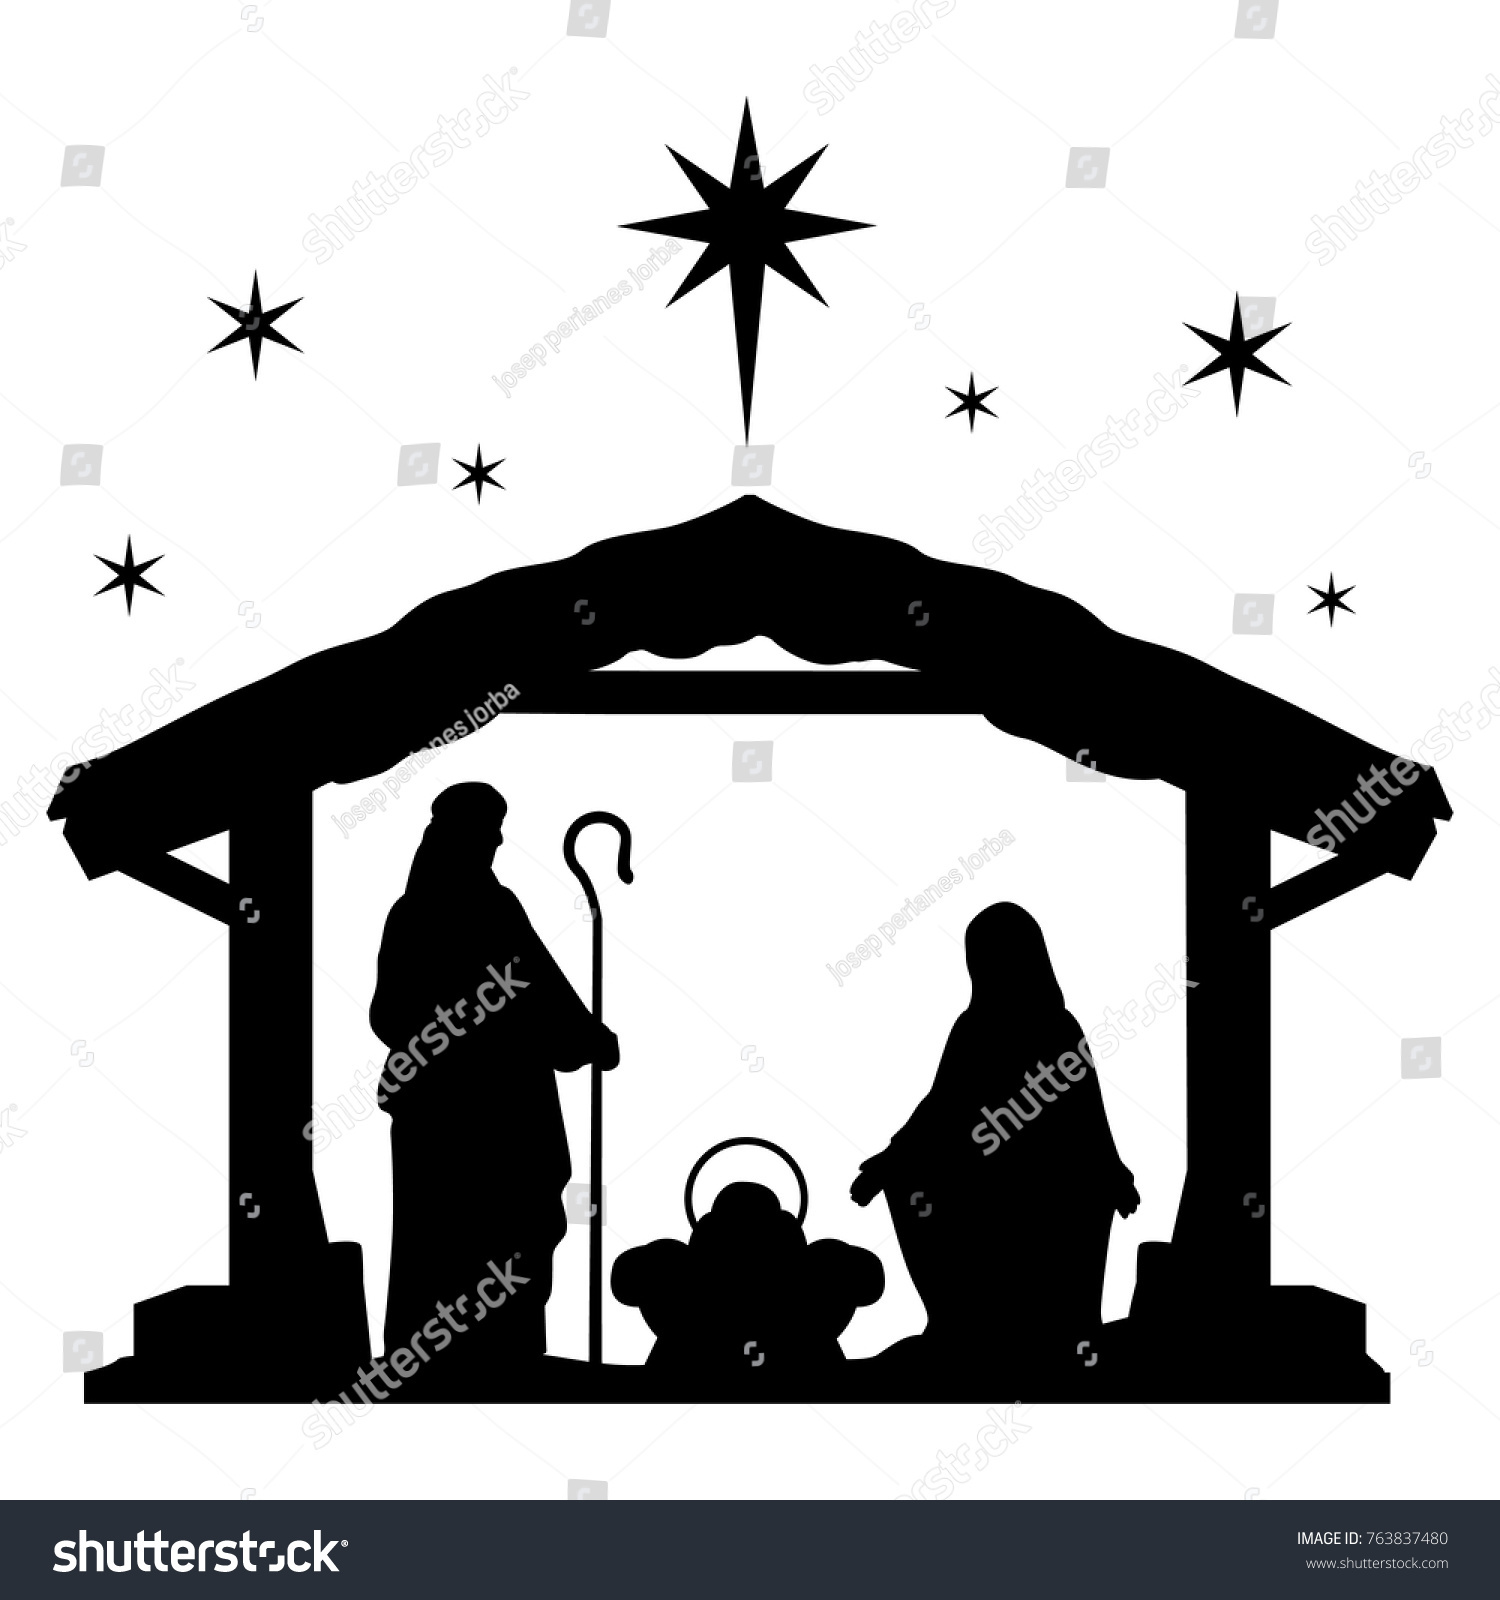 hight resolution of nativity scene silhouette holiday holly night christmas cut file scrapbook decorative card clip art vector